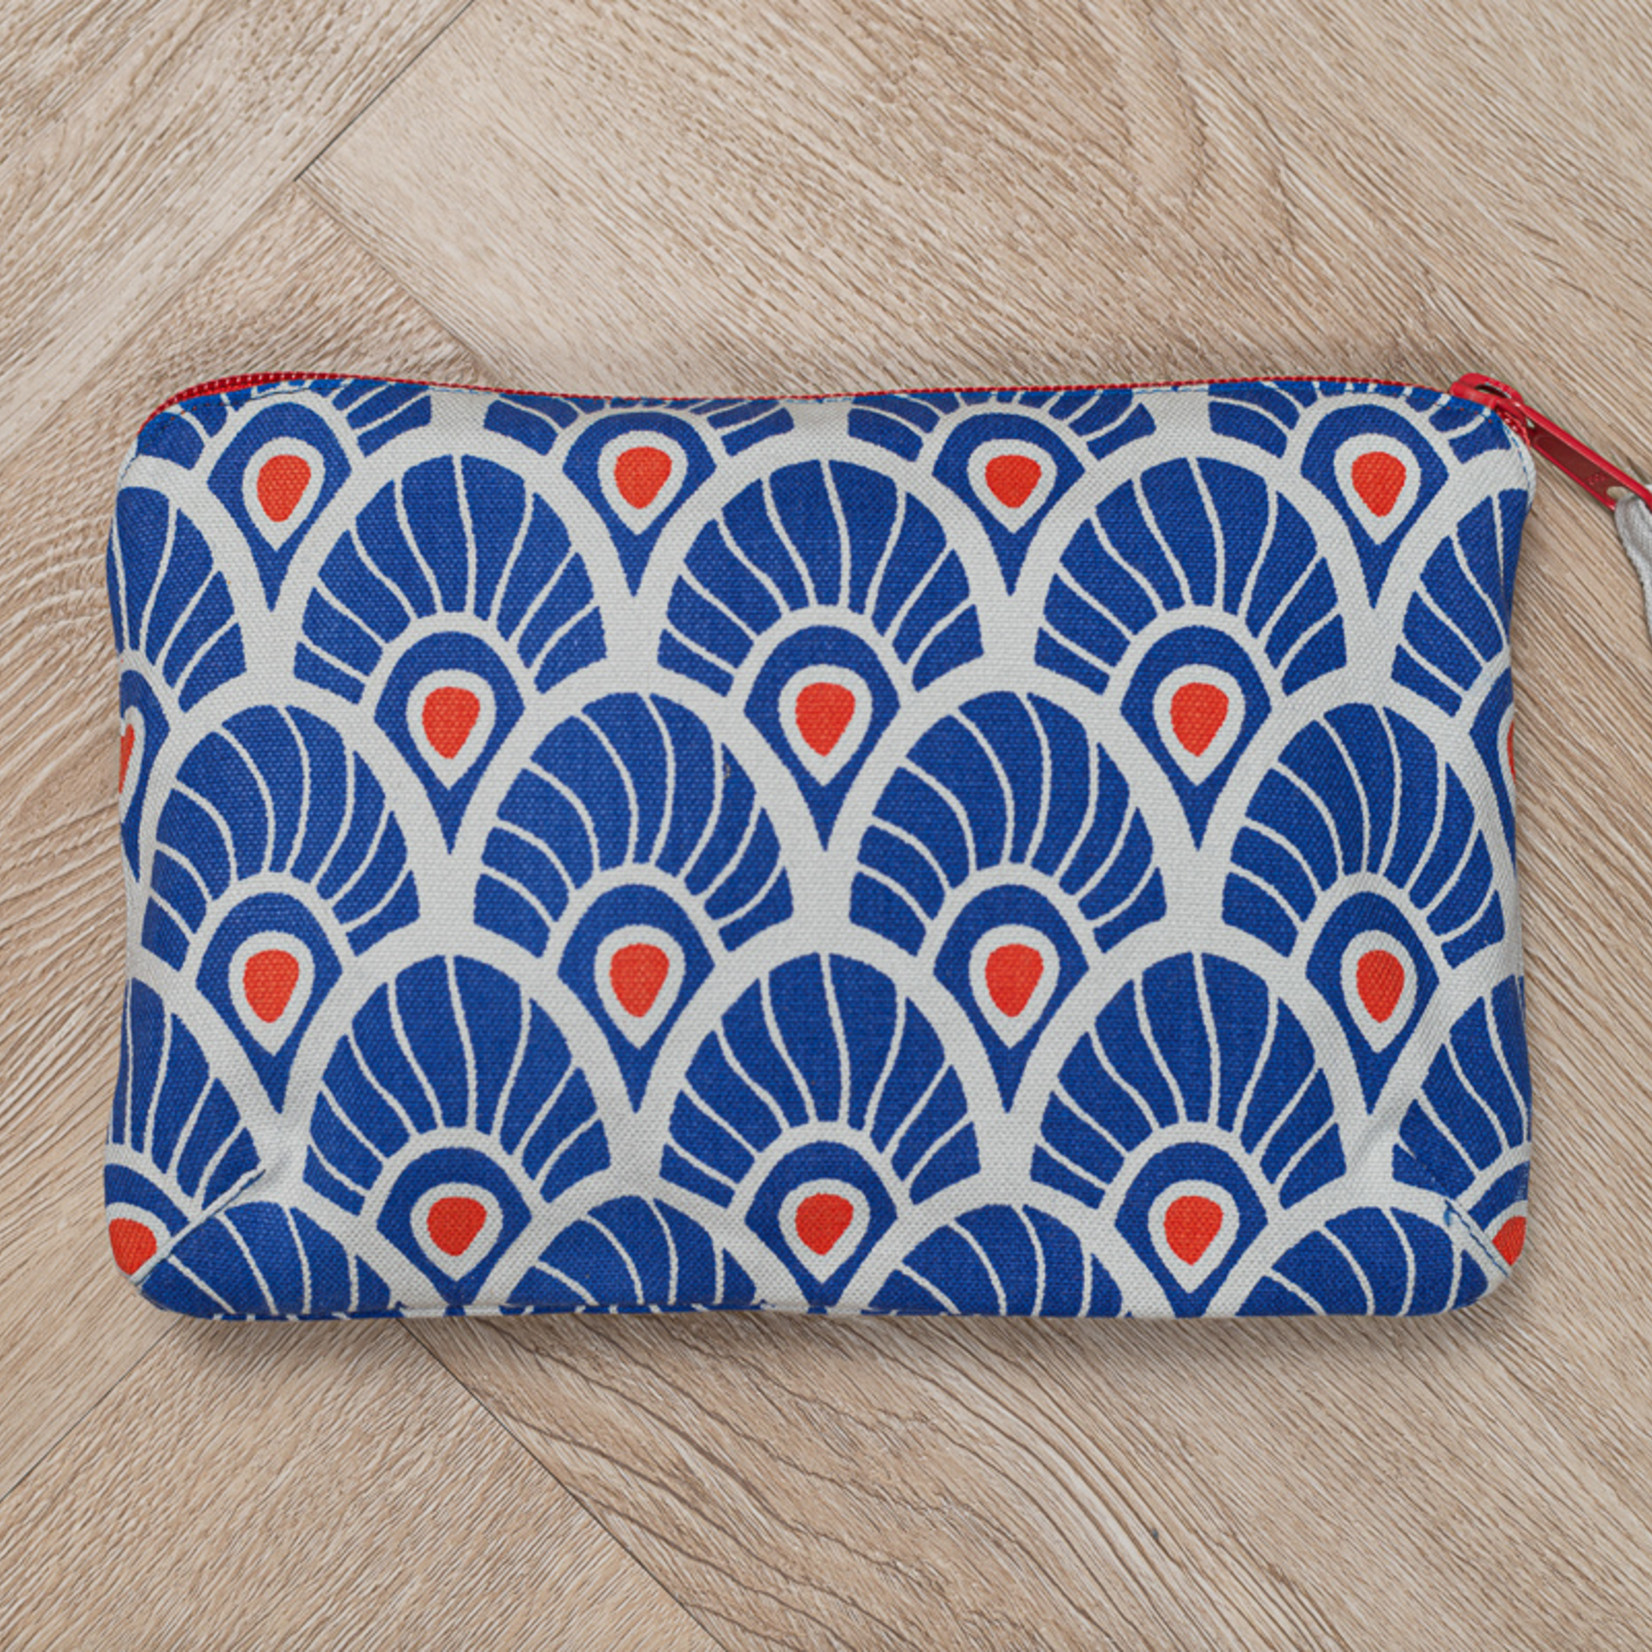 Tallentire House Tallentire House Feather Tiger Lilly sustainable bag